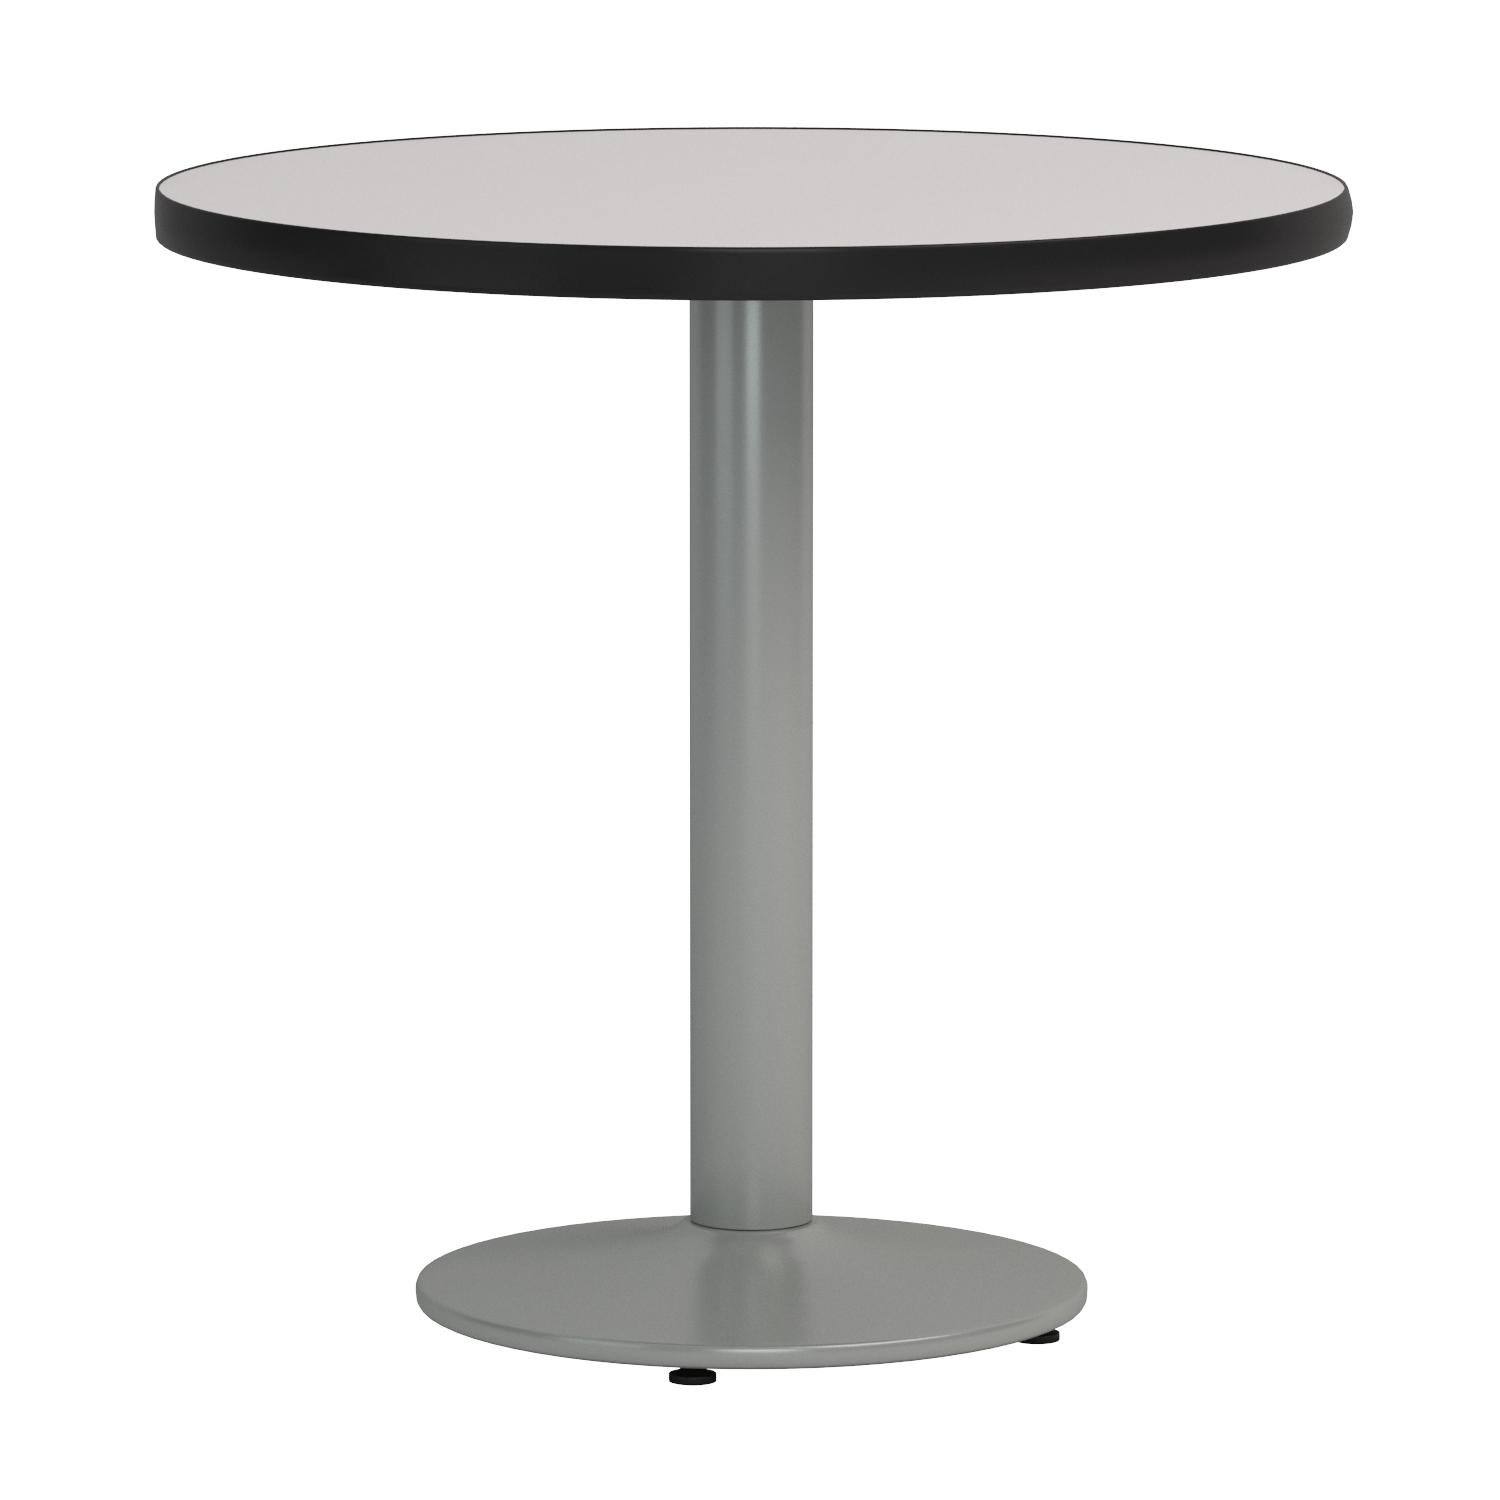 KFI Seating Round Pedestal Table with Round Silver Base, Commercial Grade, 30-Inch, Crisp Linen Laminate, Made in the USA by KFI Seating (Image #2)